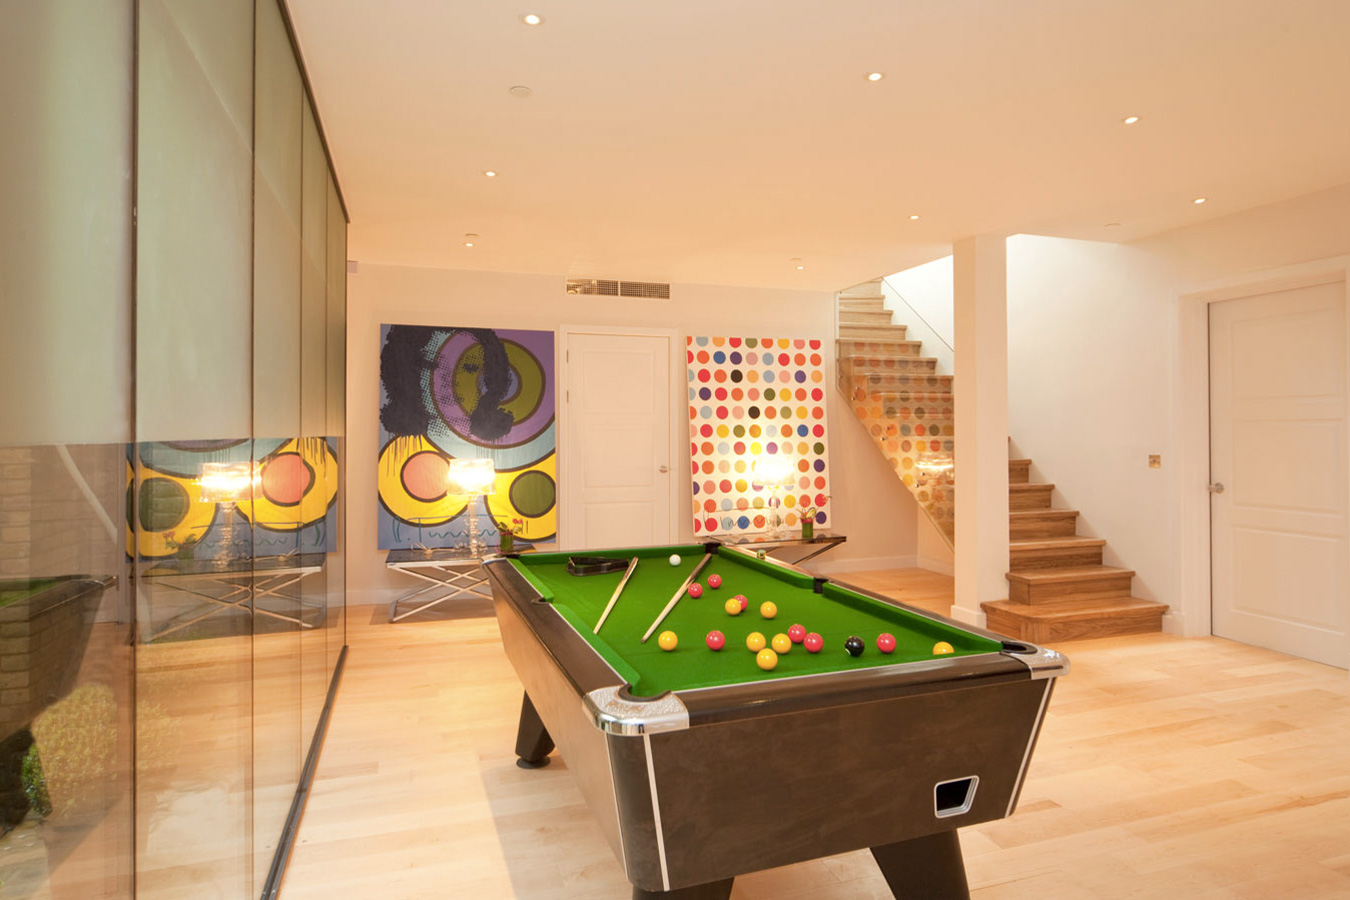 Design Box London - Interior Design - Richmond Park Home, TW10 - Games Room